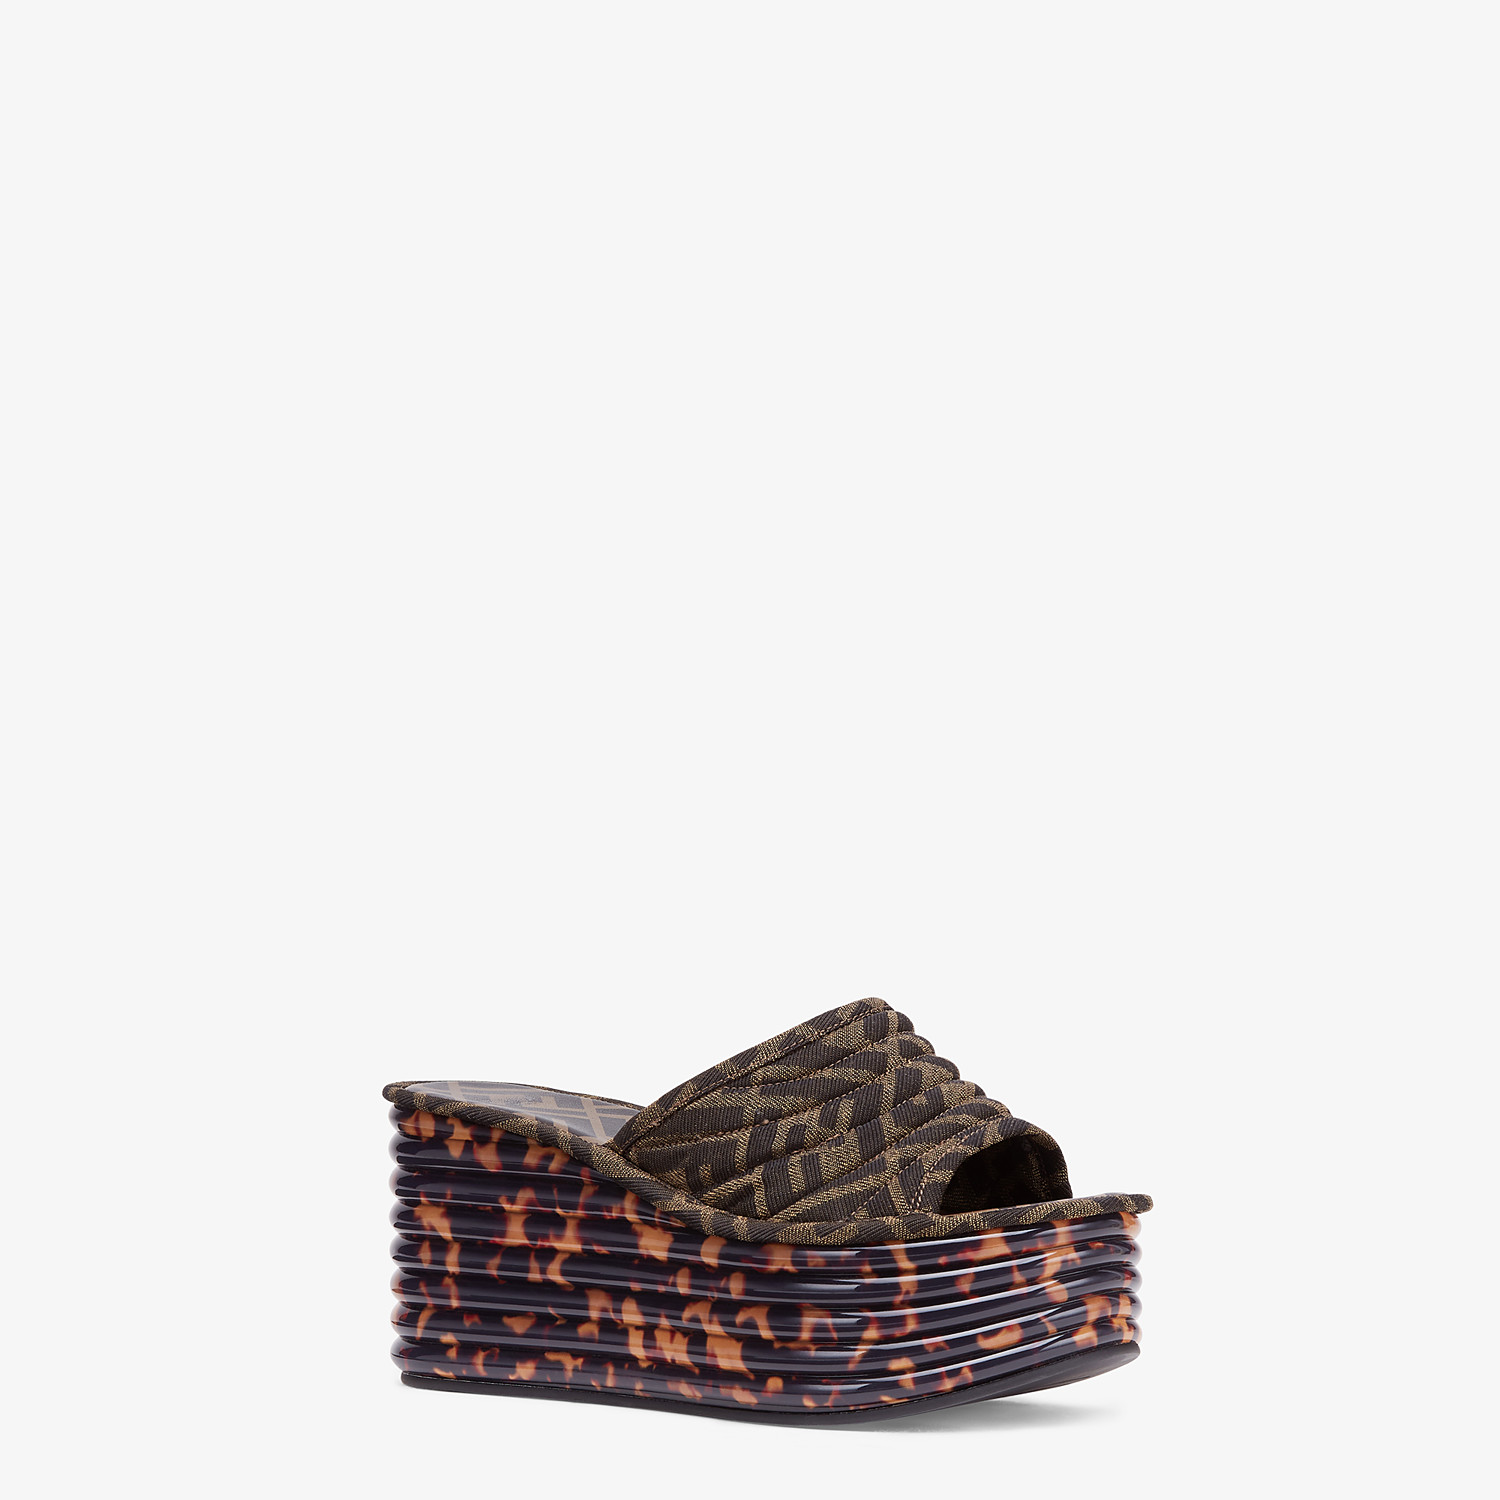 FENDI PLATFORMS - Brown fabric Promenades - view 2 detail